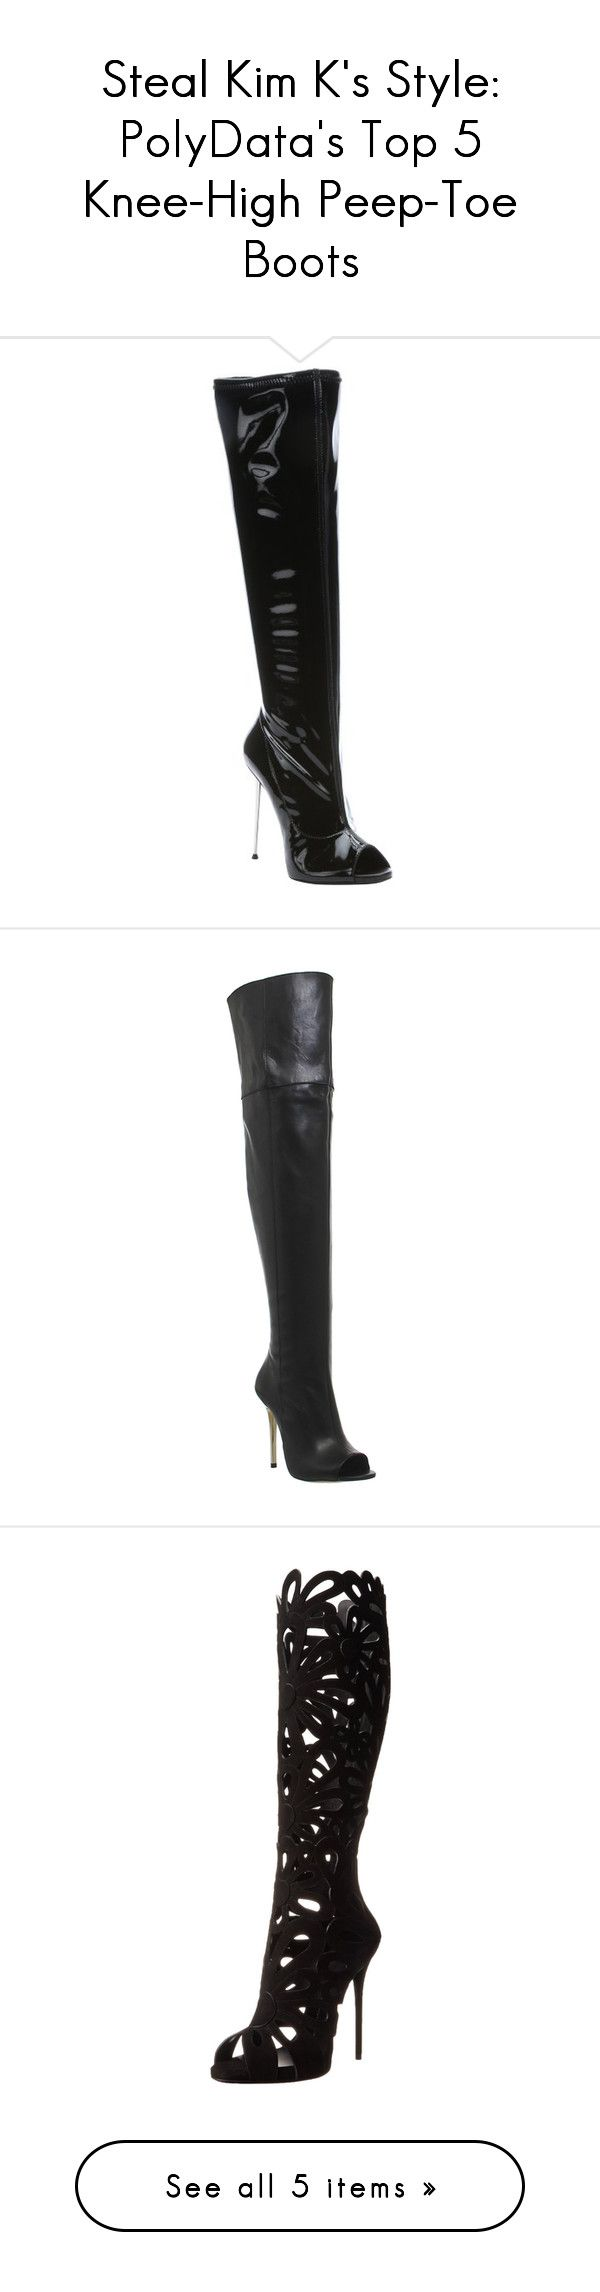 """Steal Kim K's Style: PolyData's Top 5 Knee-High Peep-Toe Boots"" by polyvore-editorial ❤ liked on Polyvore featuring kimkardashian, polydata, peeptoekneehighboots, shoes, boots, black, knee-high boots, over knee high boots, peep toe knee high boots and over the knee high heel boots"